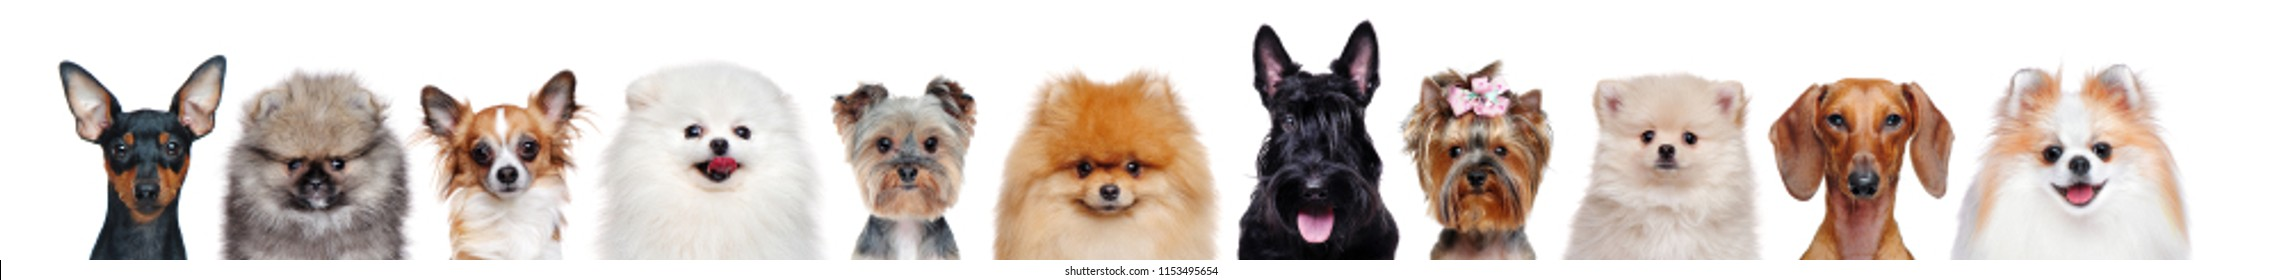 Collage of head portraits of different dog breeds